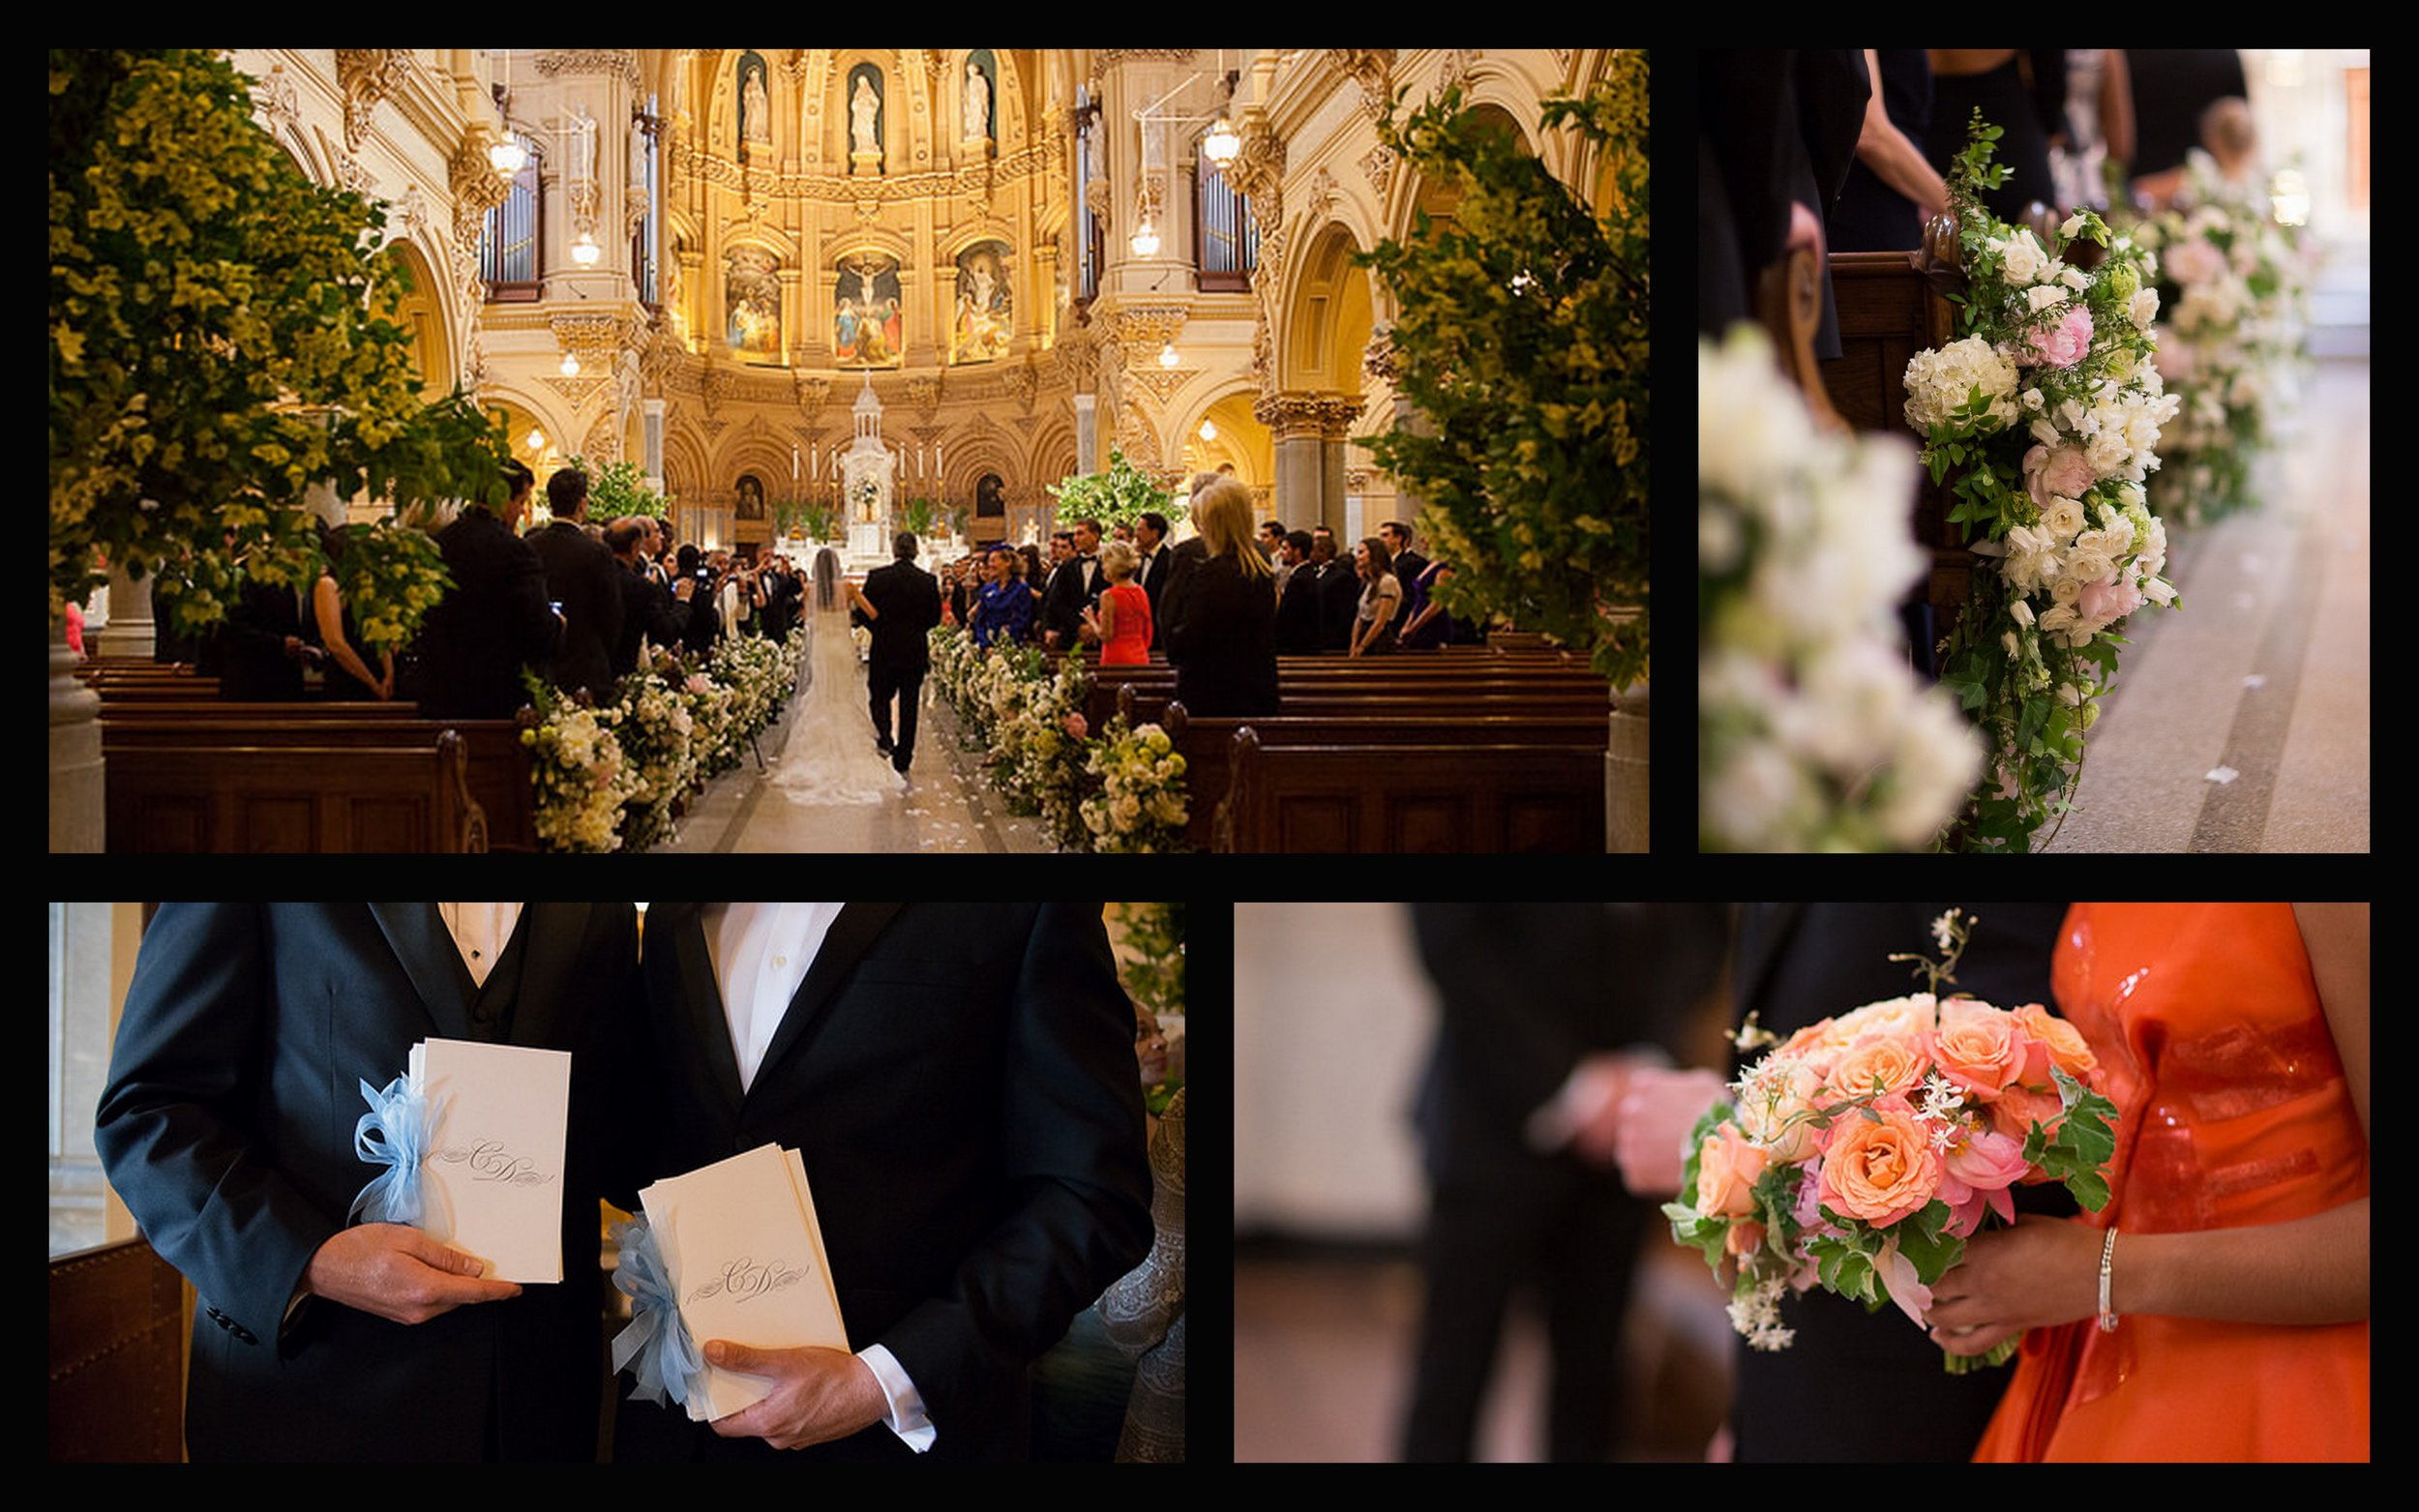 St. Francis Exavier Church, aisle, orange bridesmaid bouquet, wedding programs